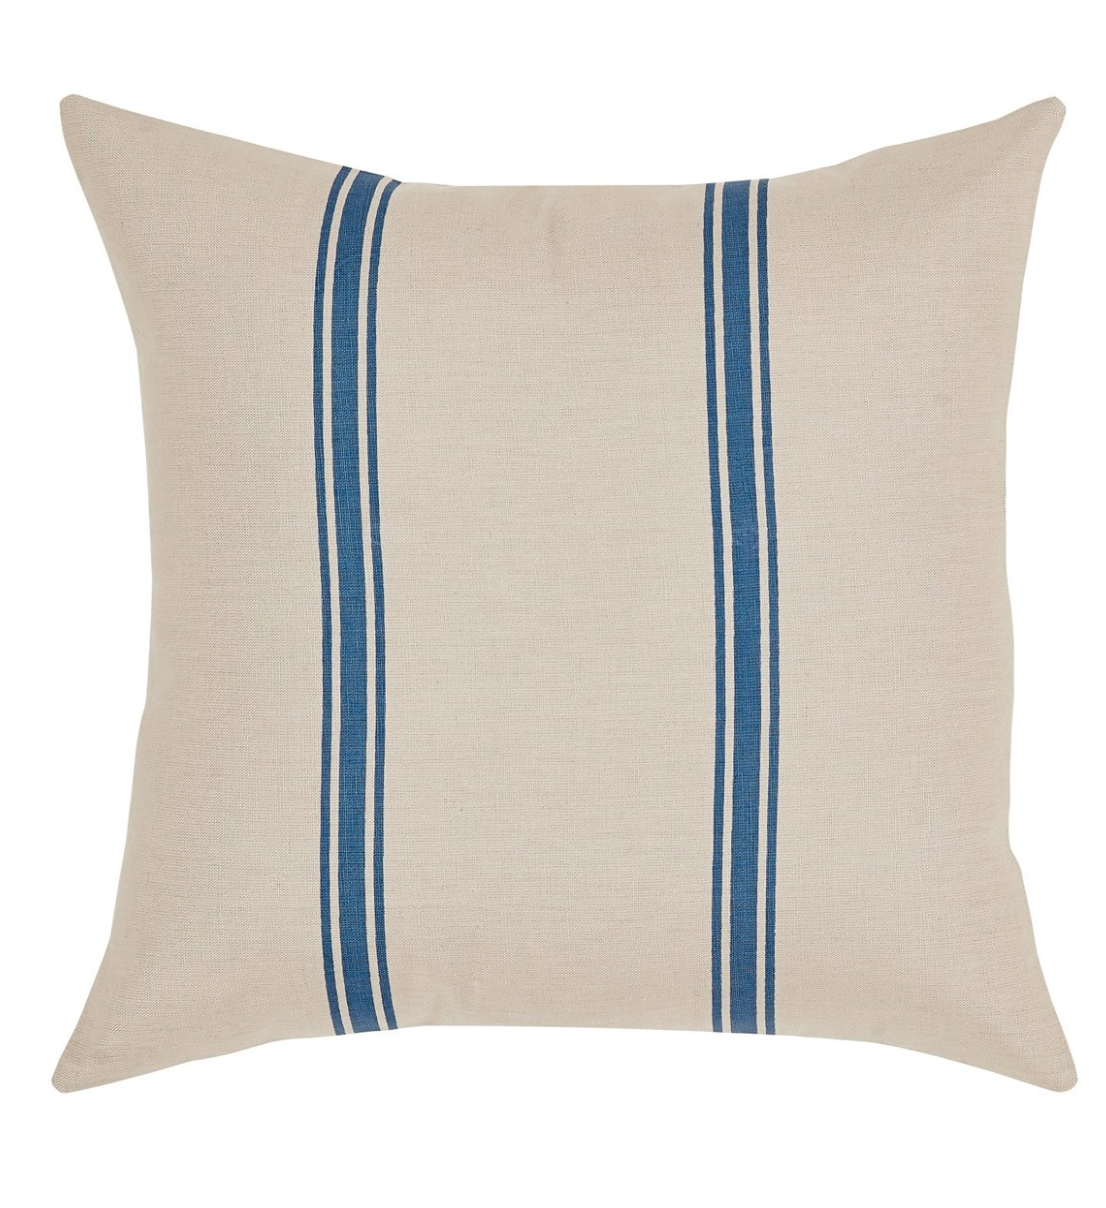 "Natural Blue Stripe Pillow Cover 16"" x 16"""